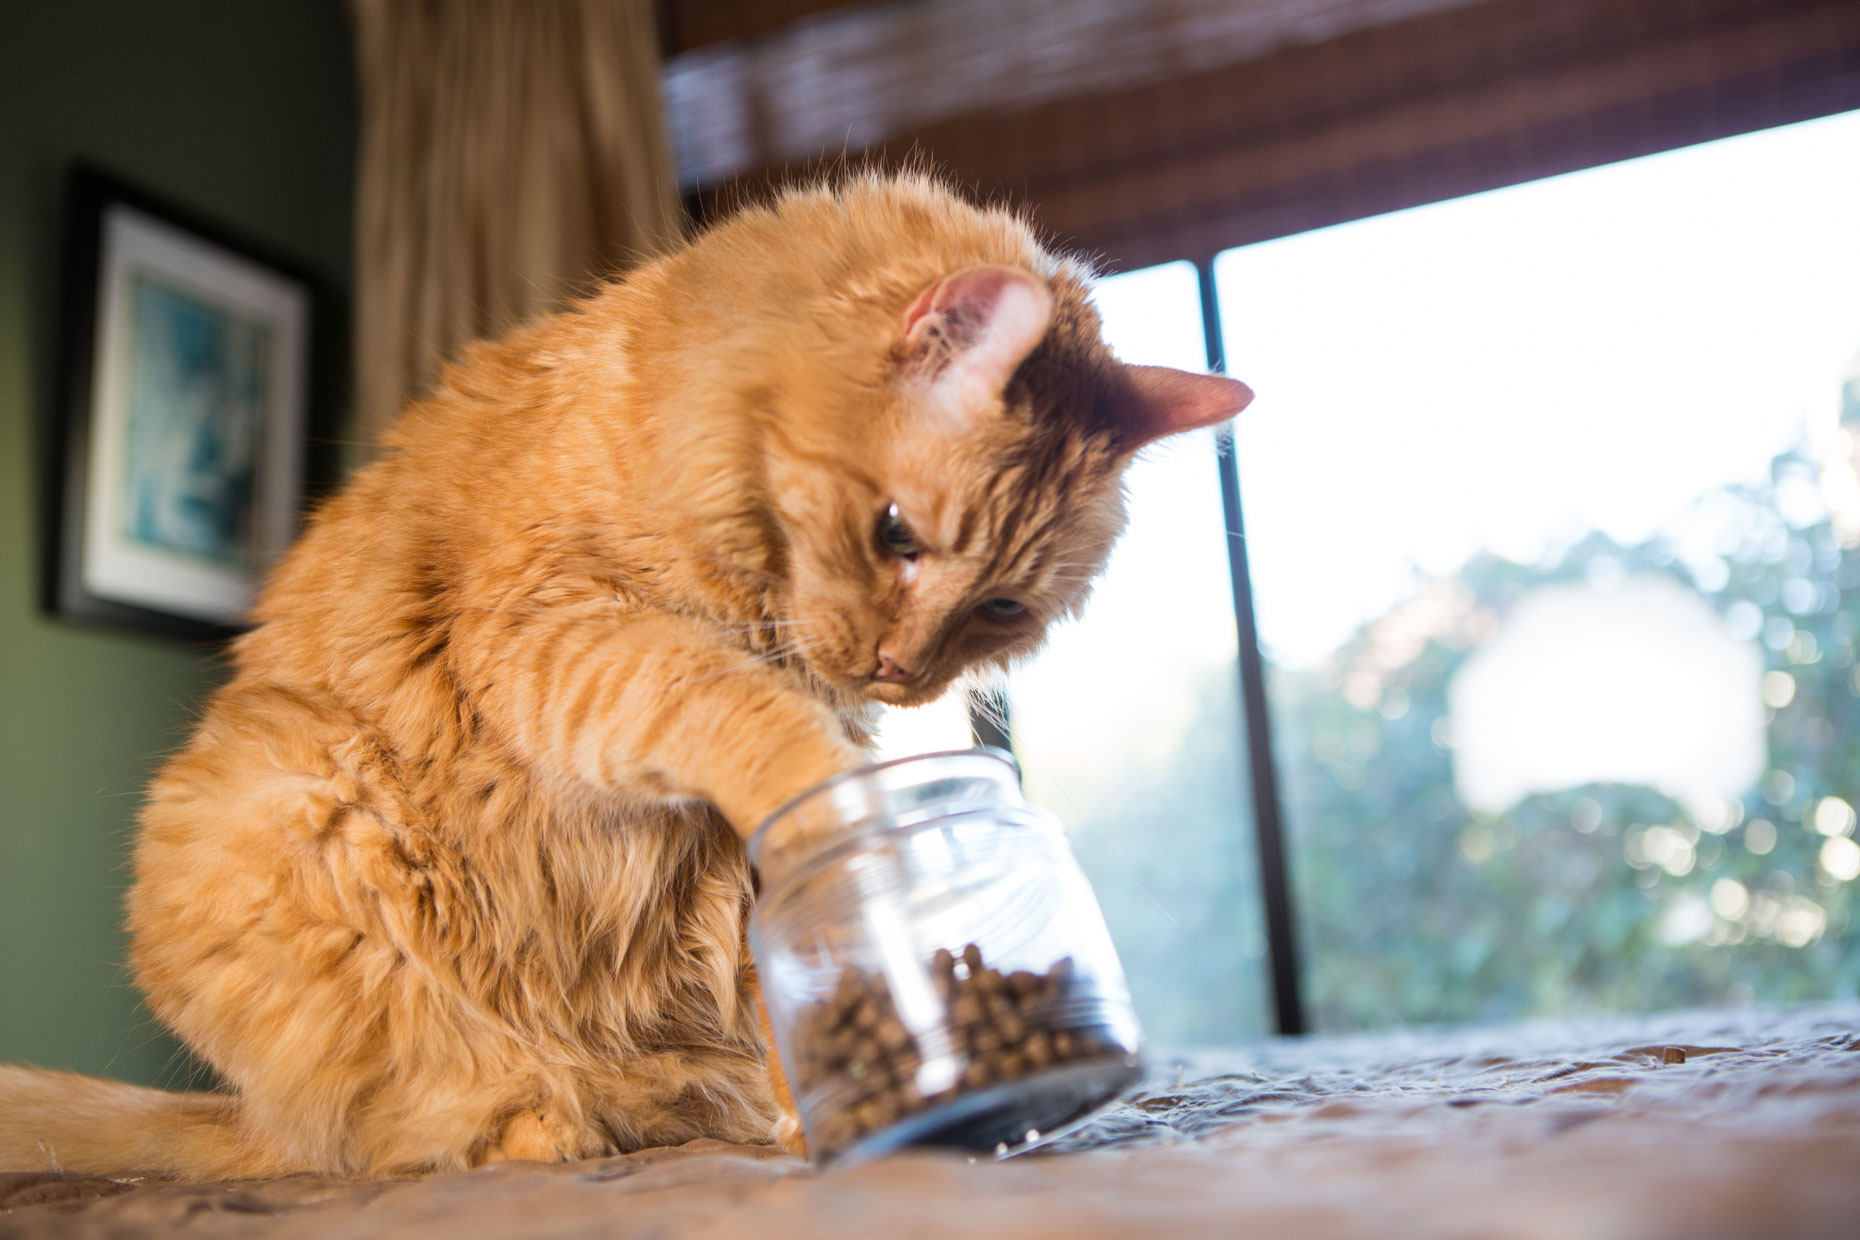 Cat Photography | Cat Reaching into Treat Jar by Mark Rogers